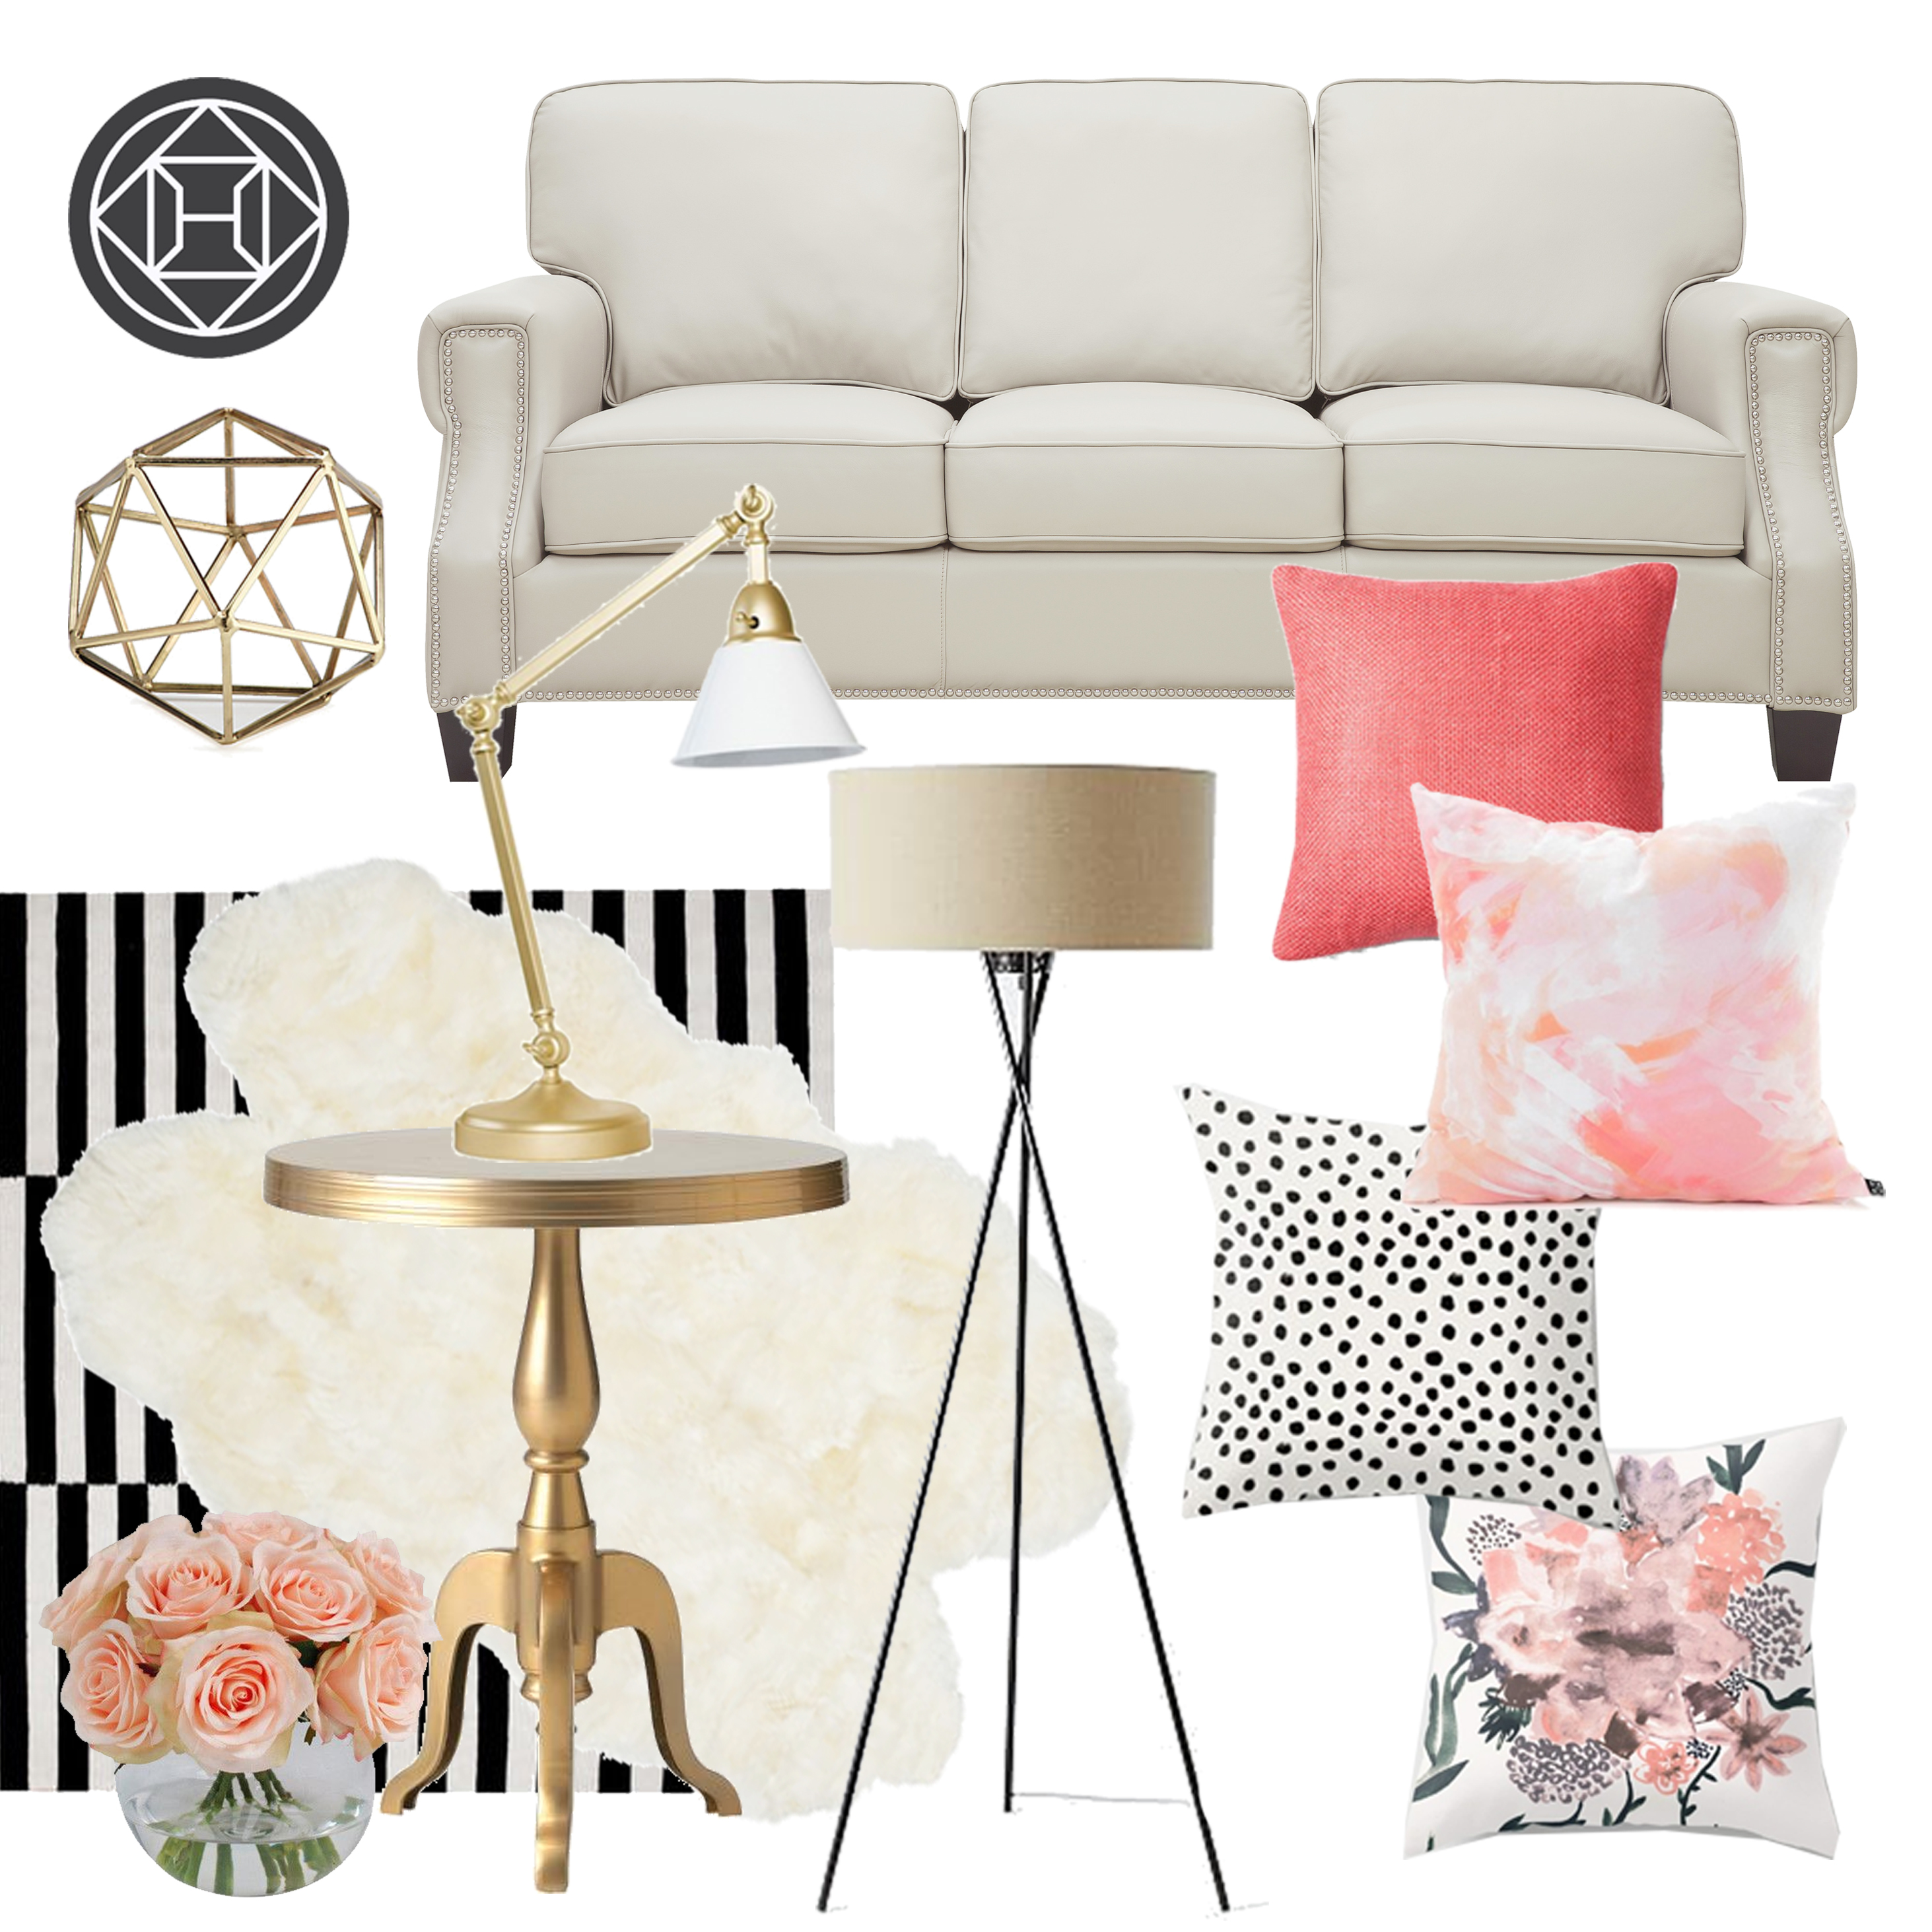 Glam Living Room All Day! - The Karma Corner